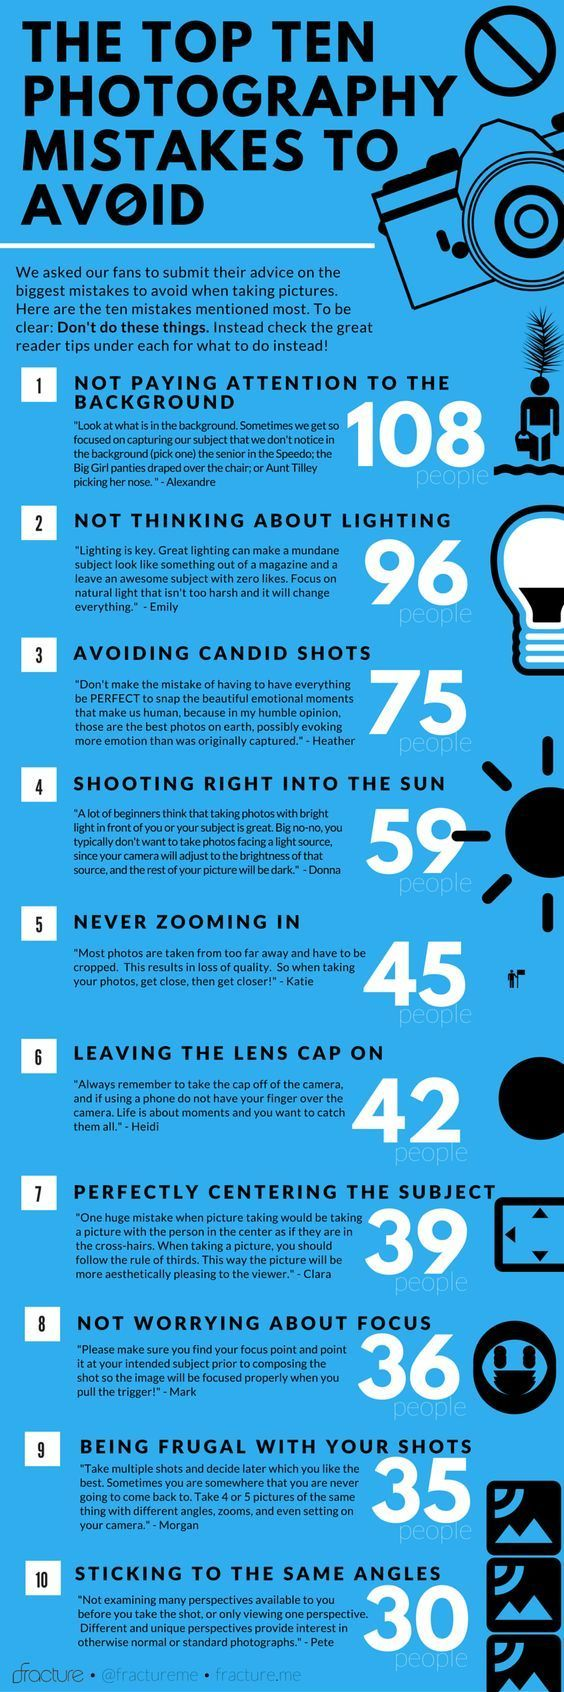 Fracture's Awesome Infographic of Photography Mistakes to Avoid! (Plus 58 more tips on the site!):